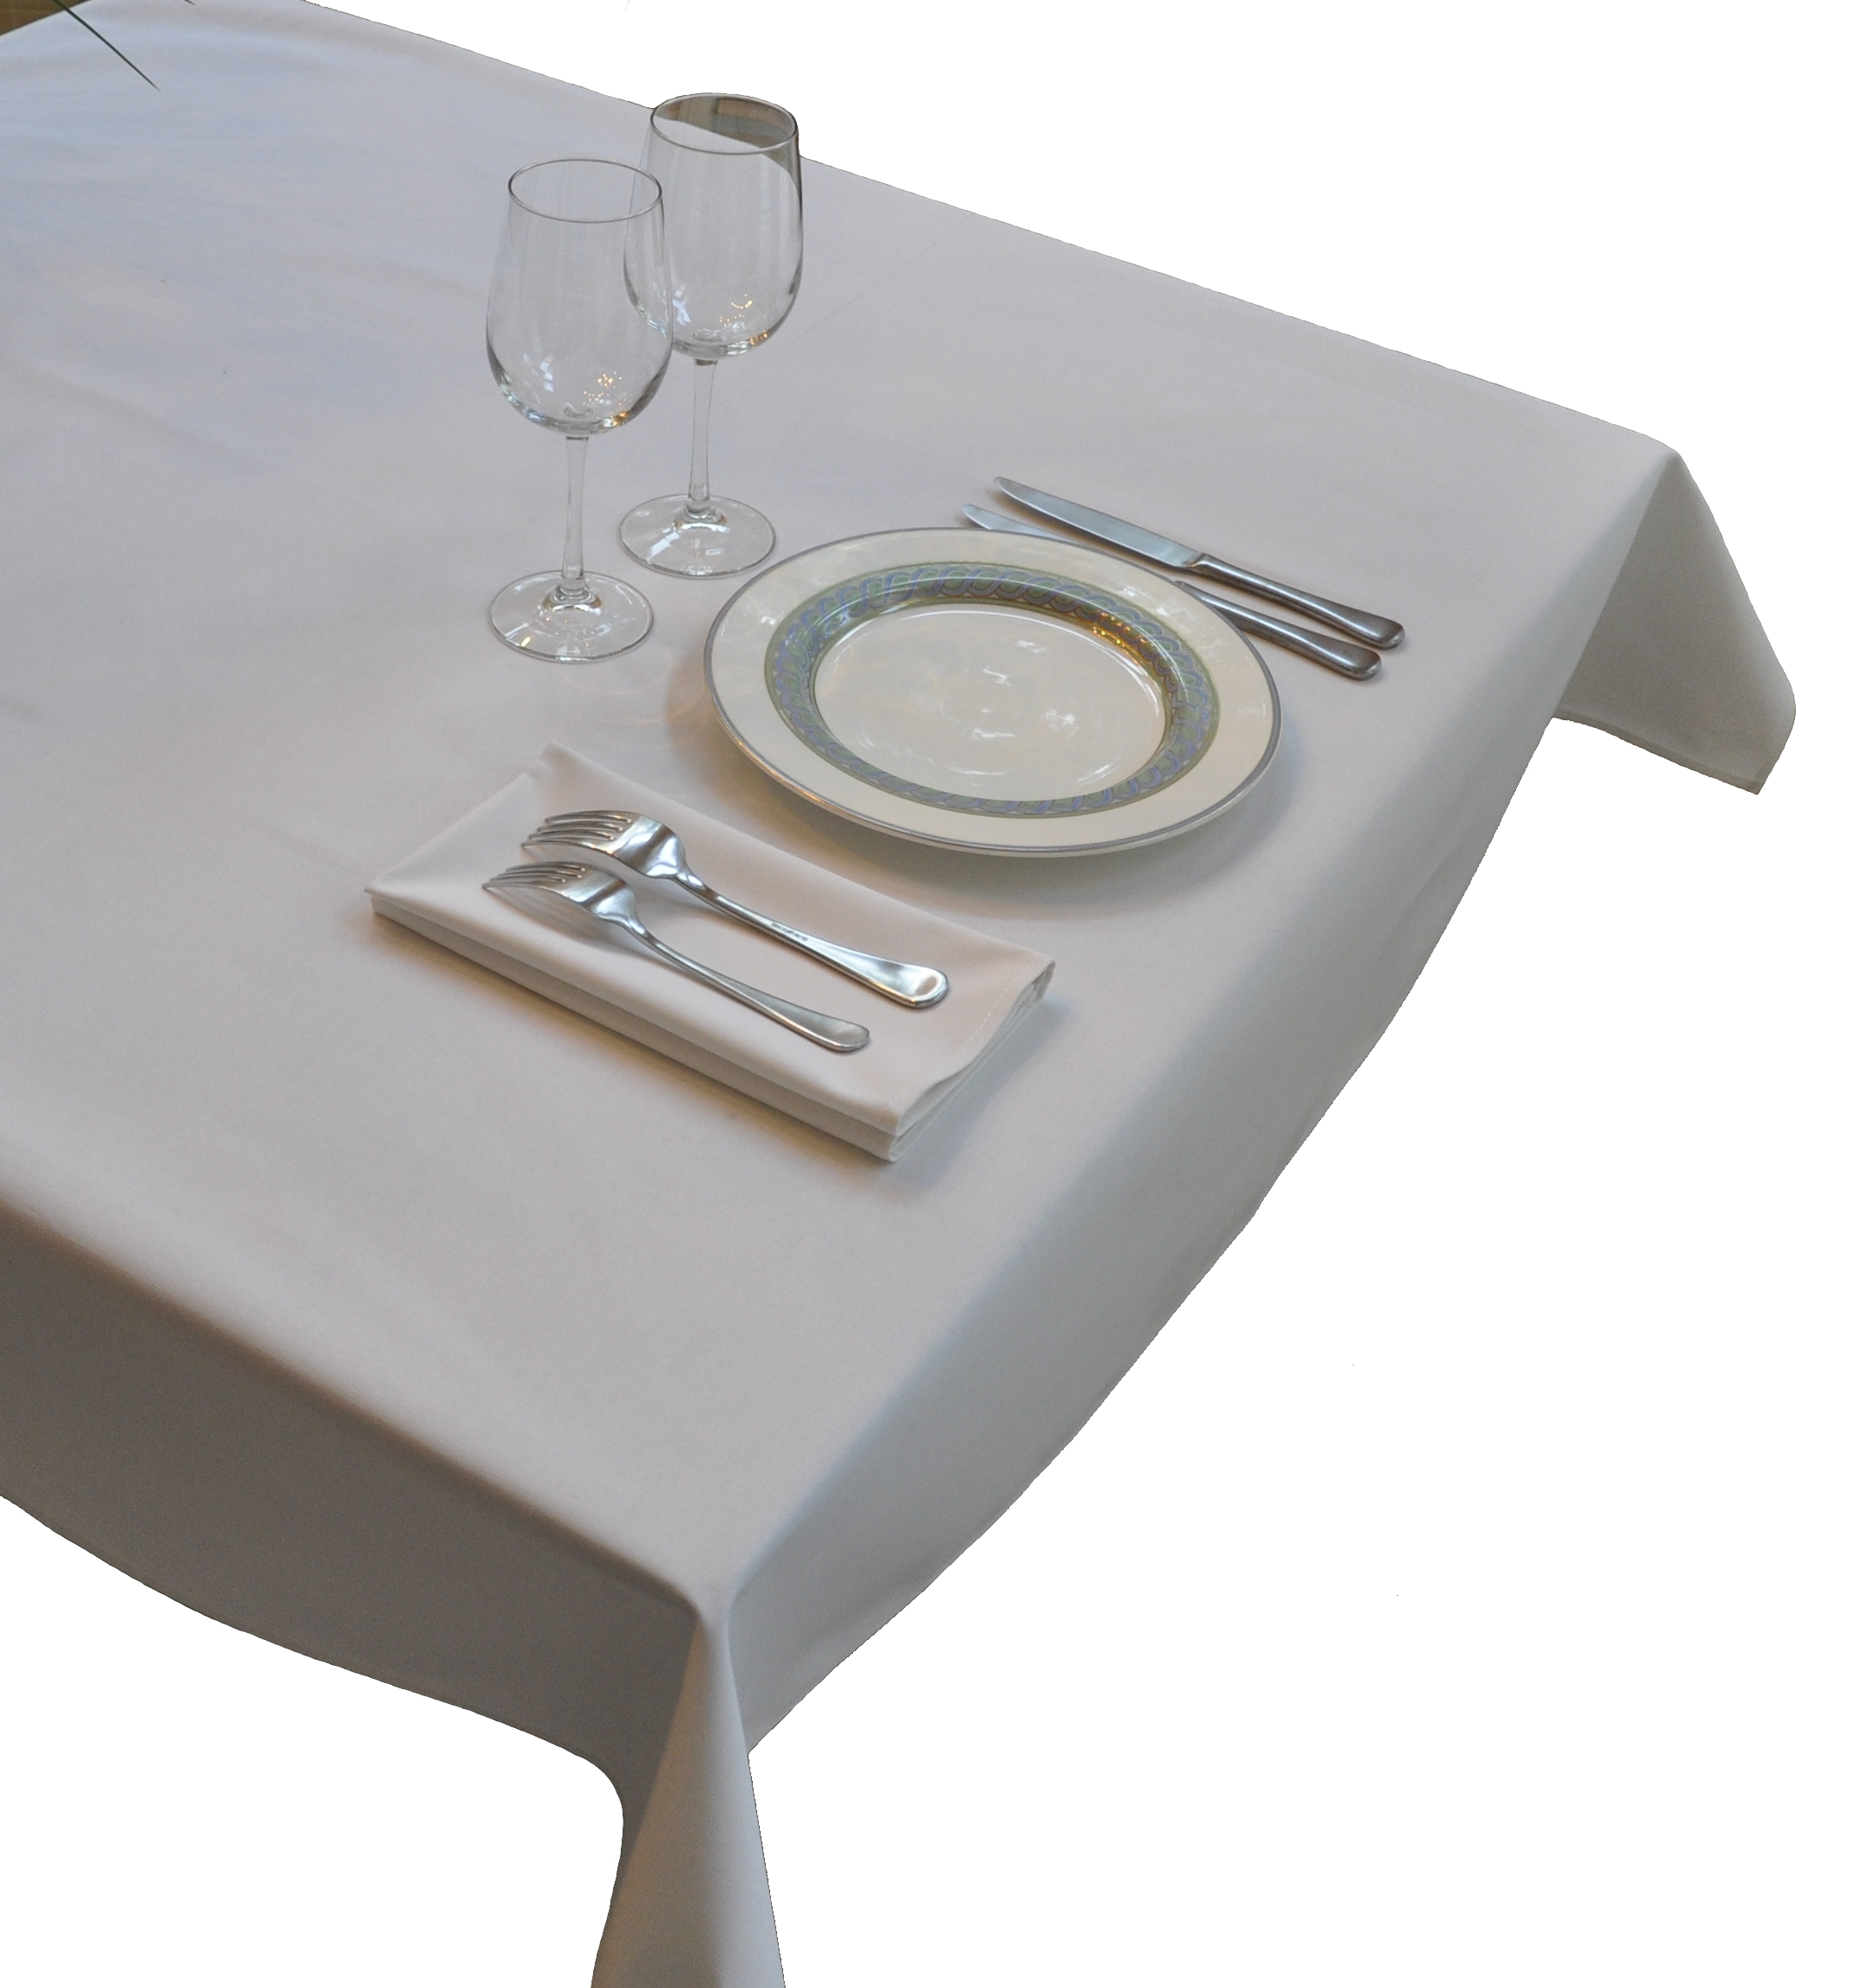 Nouvelle Legende® Tablecloth - Commercial Grade  52 in. by 52 in. White